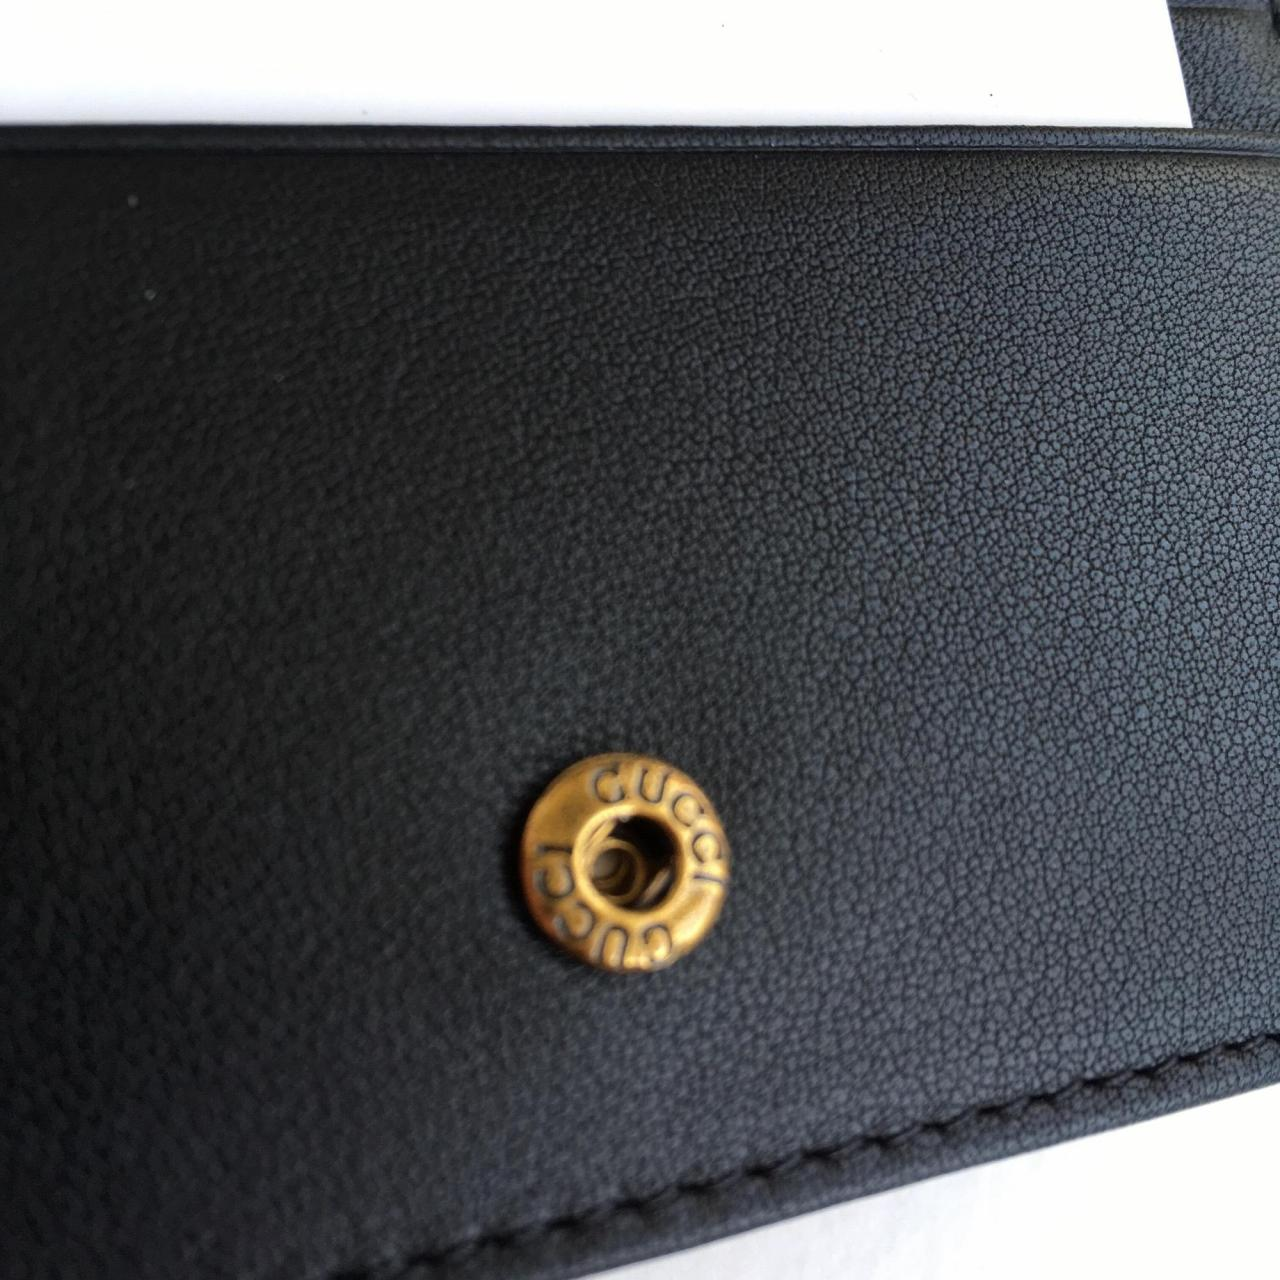 Low Price Replica Bags Gucci                        Black Marmont Gg Card Case Wallet